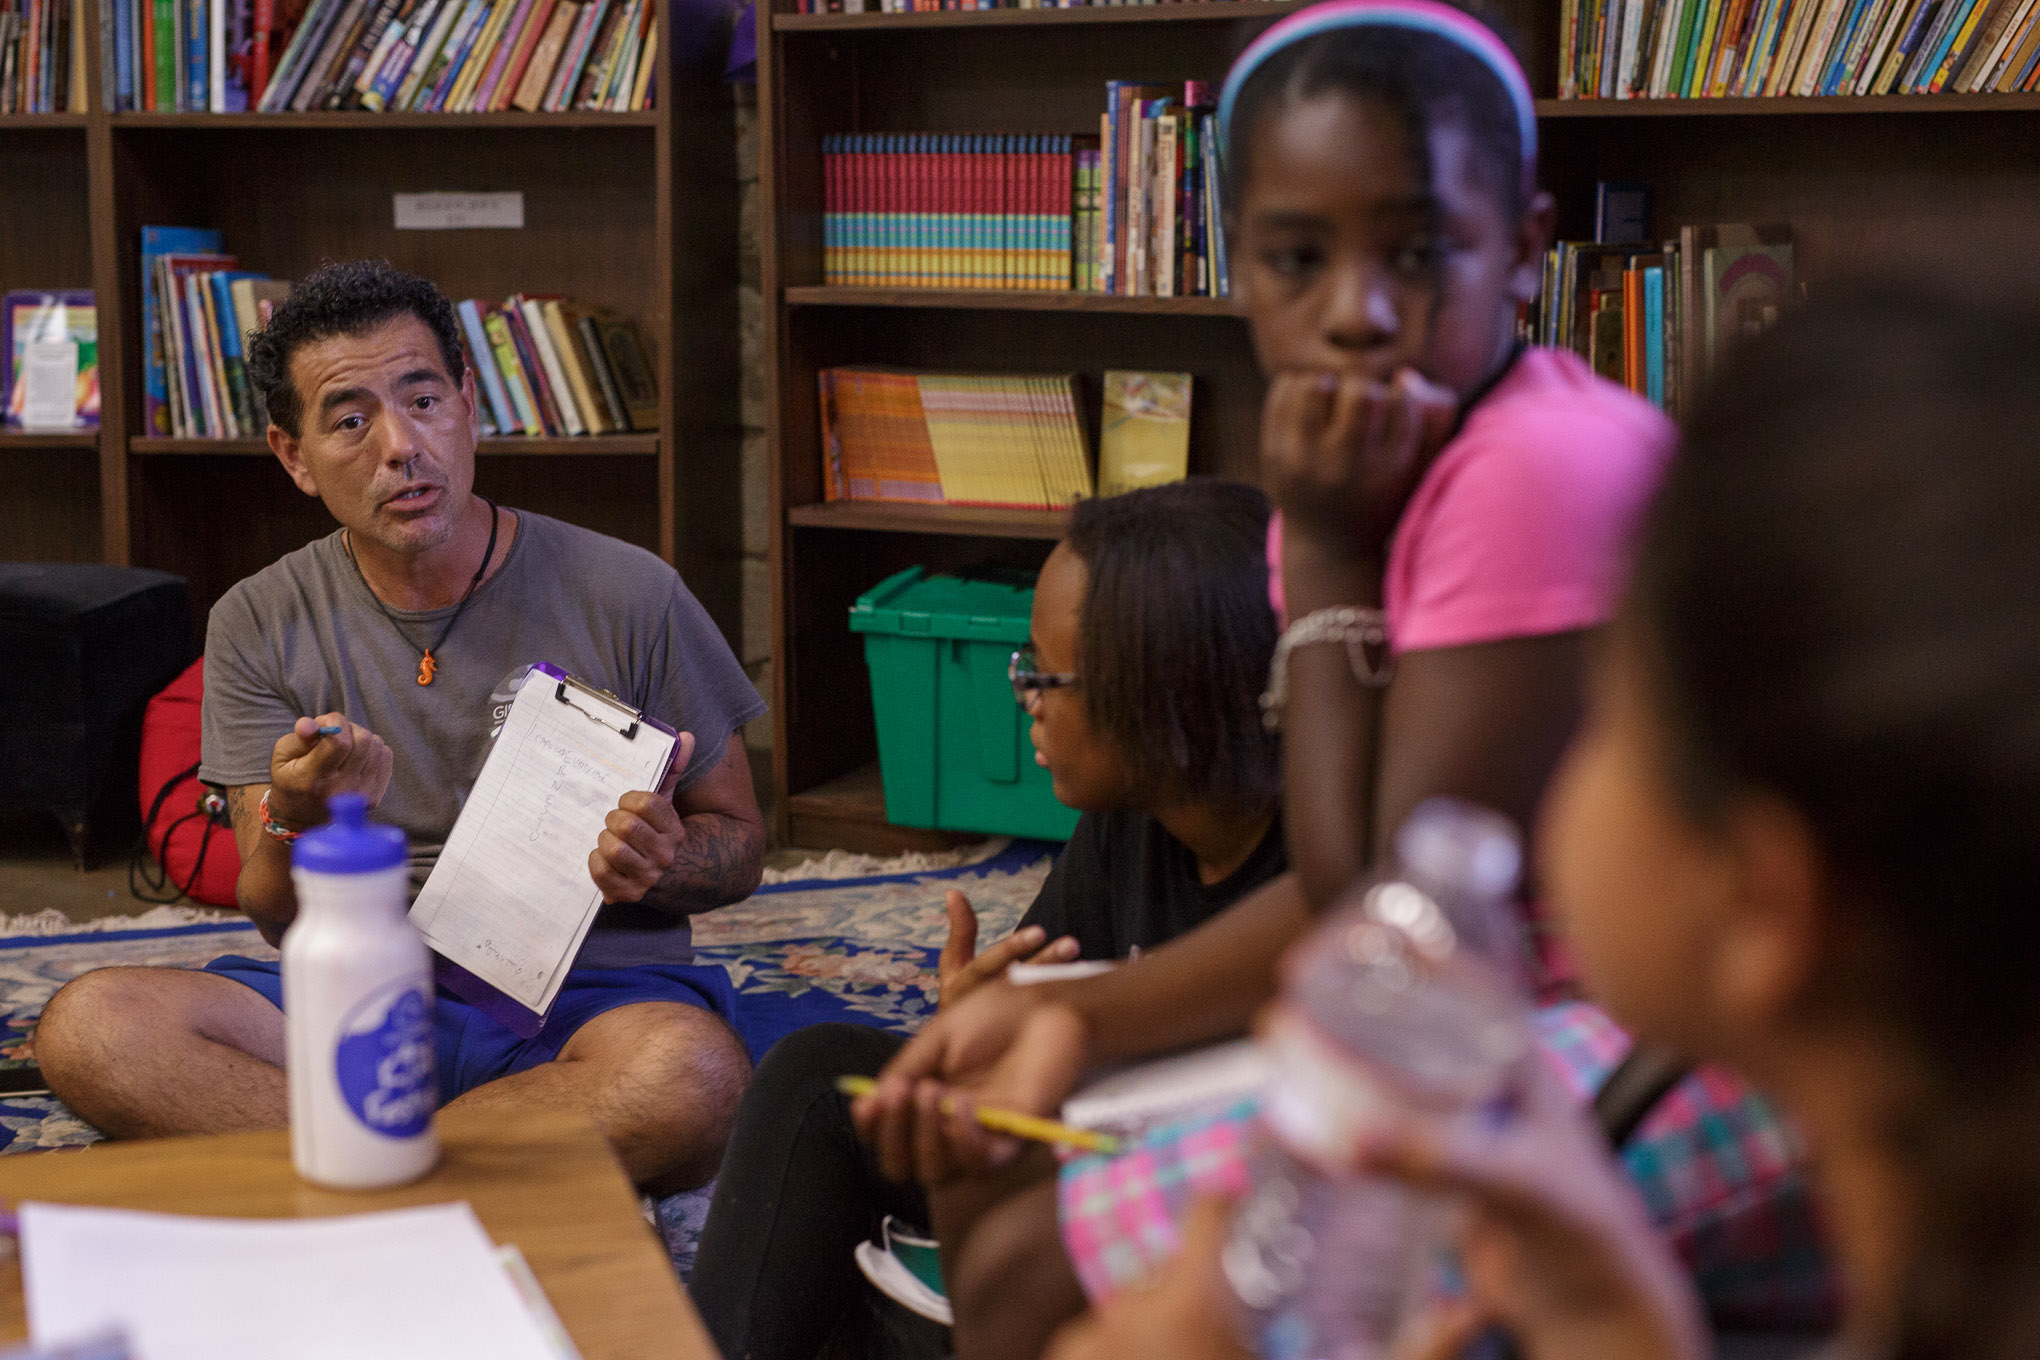 Ernesto Olivo instructs his small breakout group with ideas on creative ways to write poems. Photo by Scott Ball.